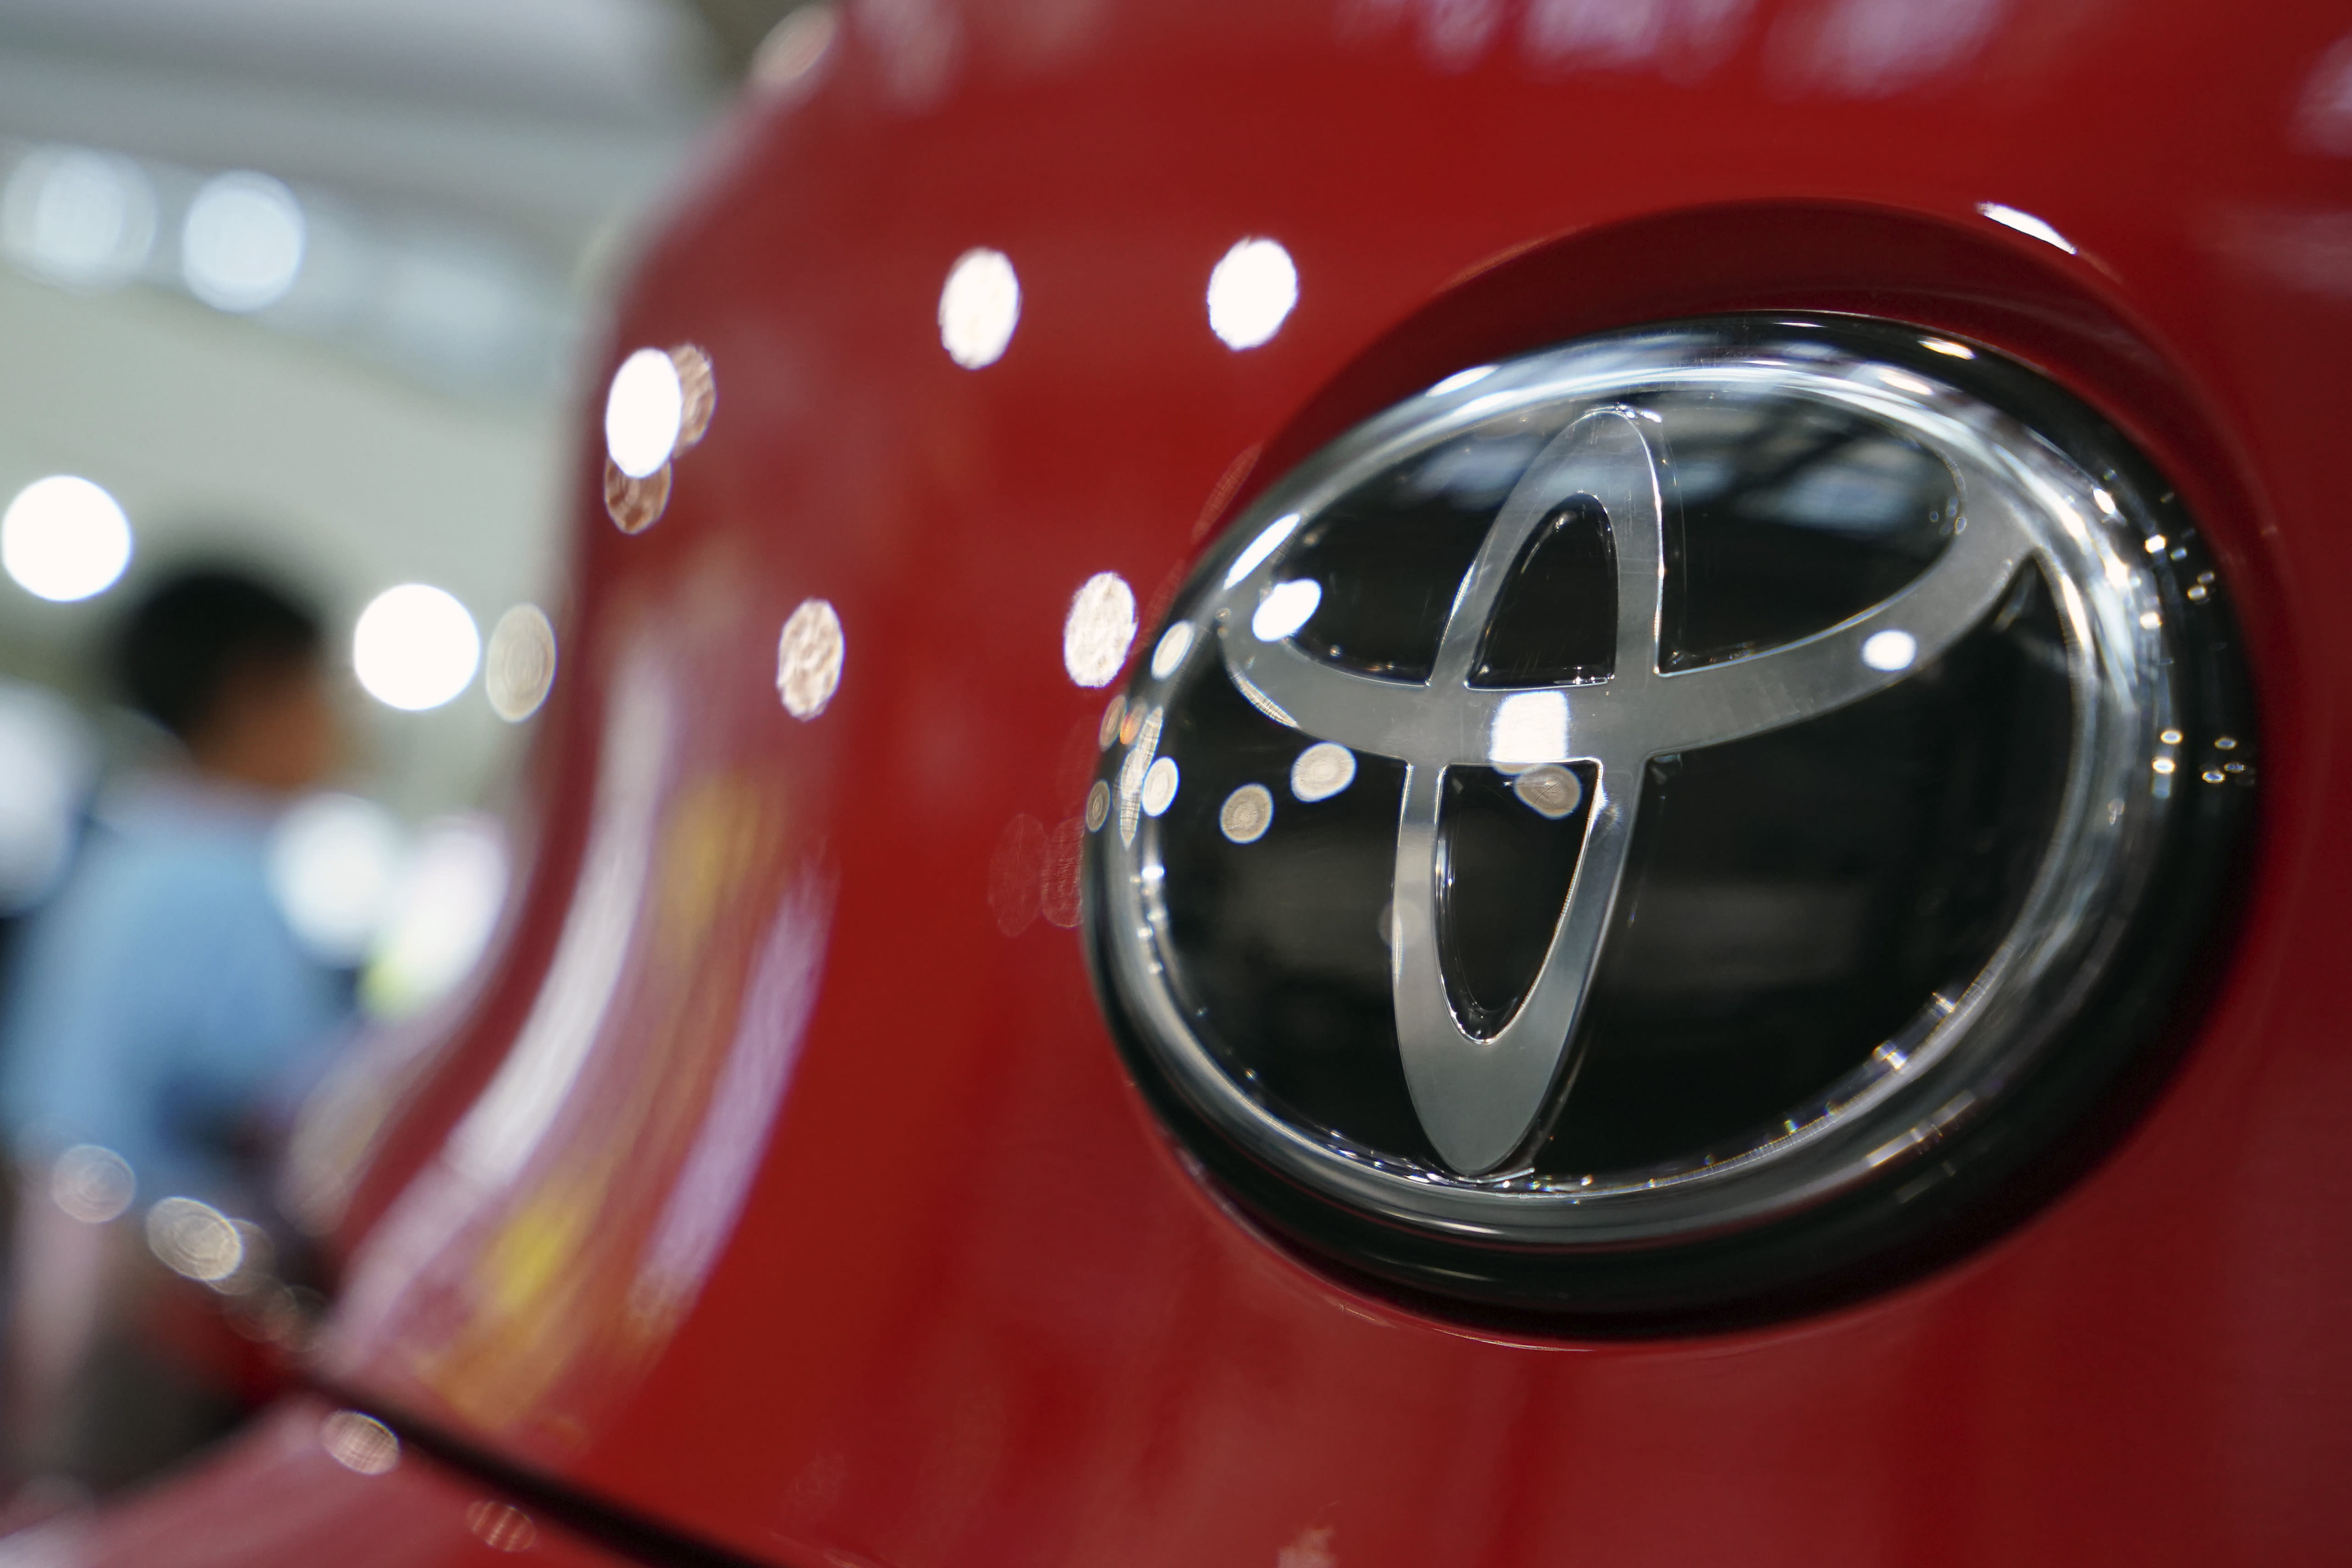 FILE - In this Aug. 2, 2019, file, photo, people walk by the logo of Toyota at a show room in Tokyo. Japan's top automaker Toyota has seen a 1% rise in July-September profit as vehicle sales grew around the world, according to Toyota's report on Thursday, Nov. 7, 2019. (AP Photo/Eugene Hoshiko, File)